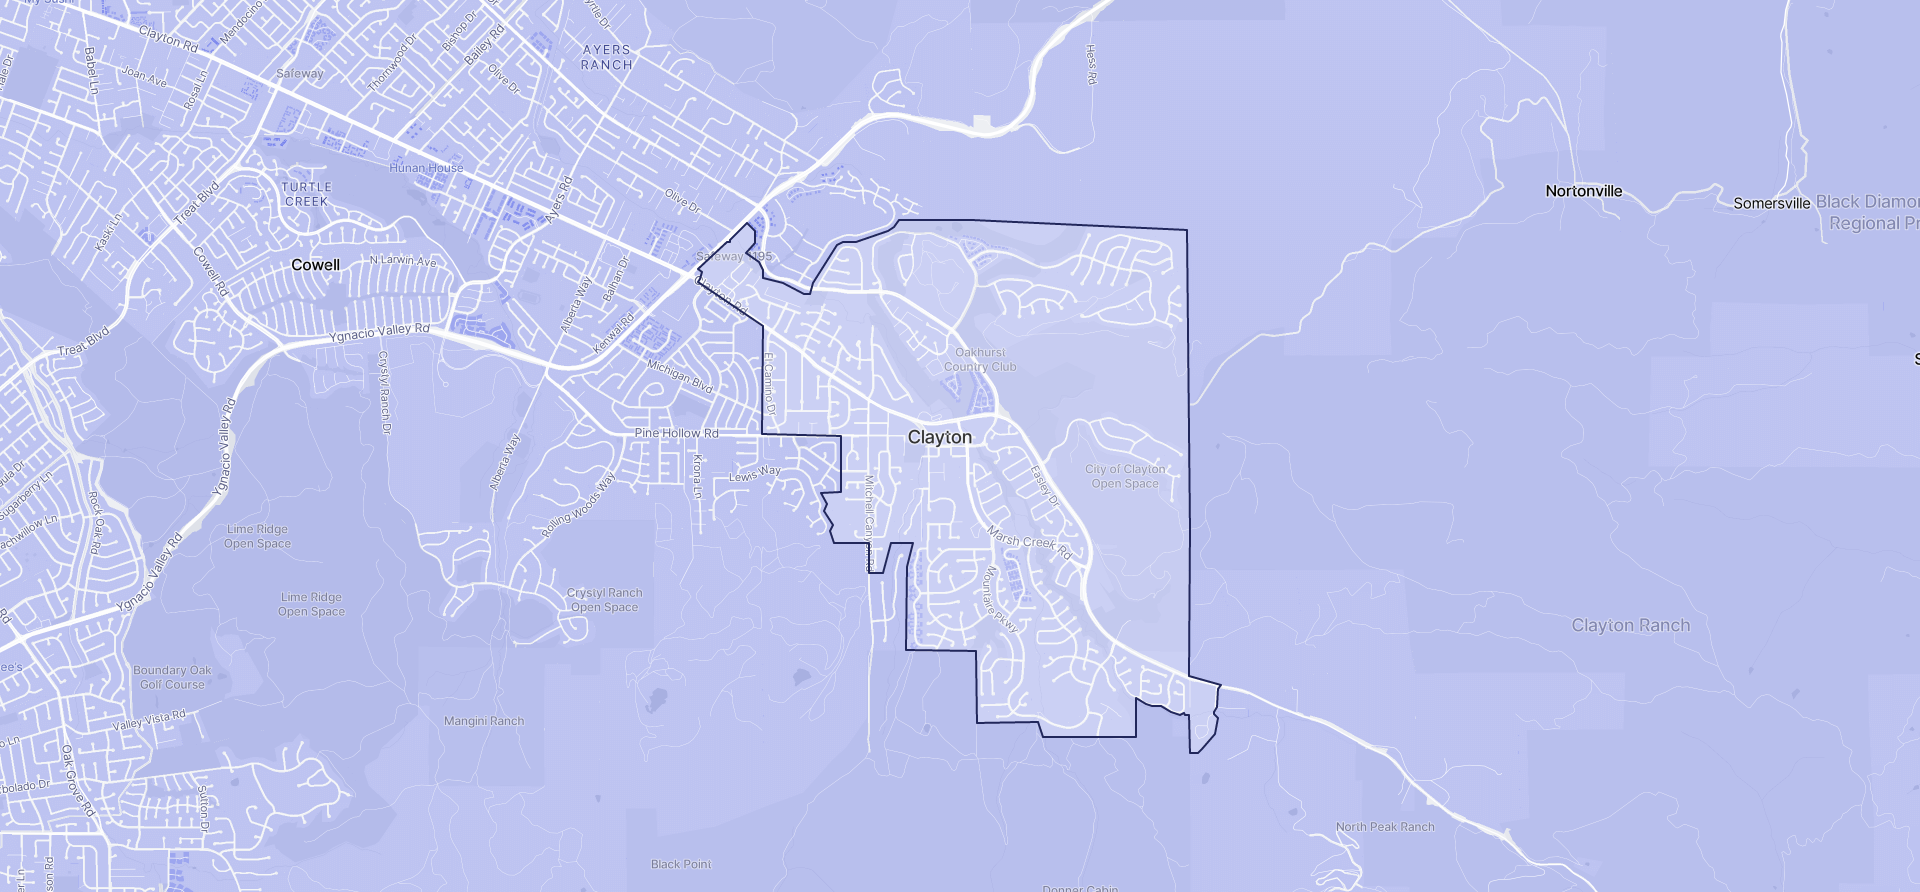 Image of Clayton boundaries on a map.